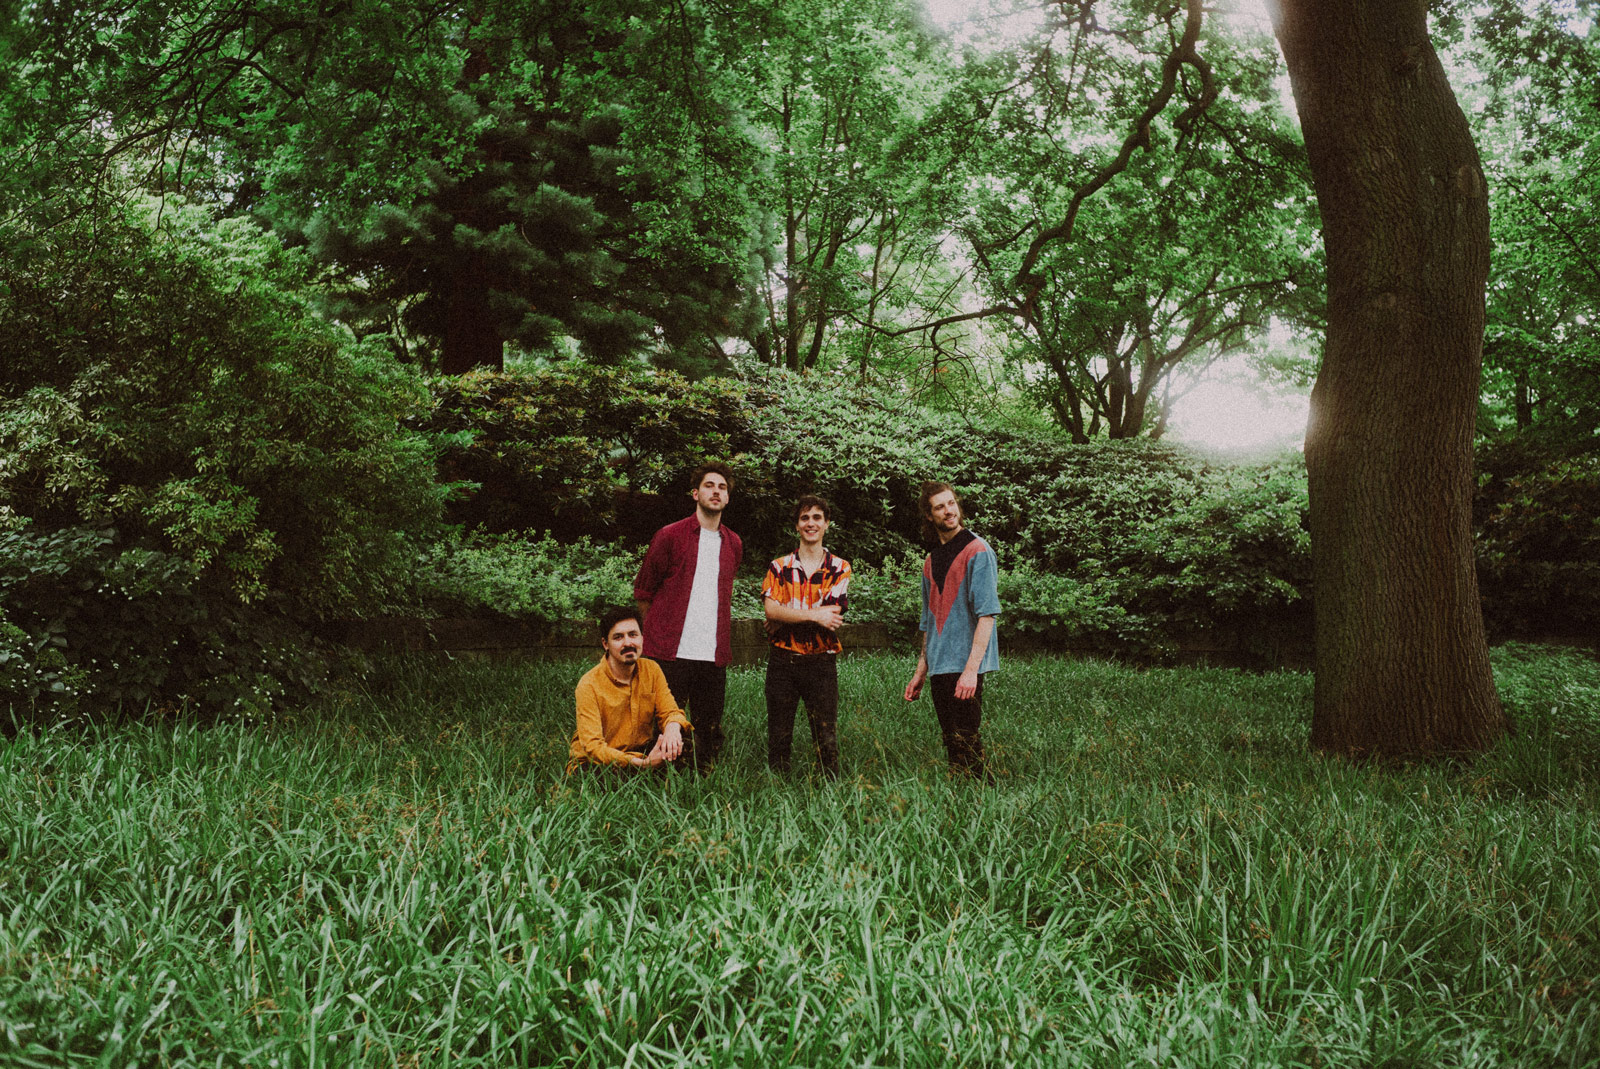 BILBAO are the new indie-pop sensation from Germany